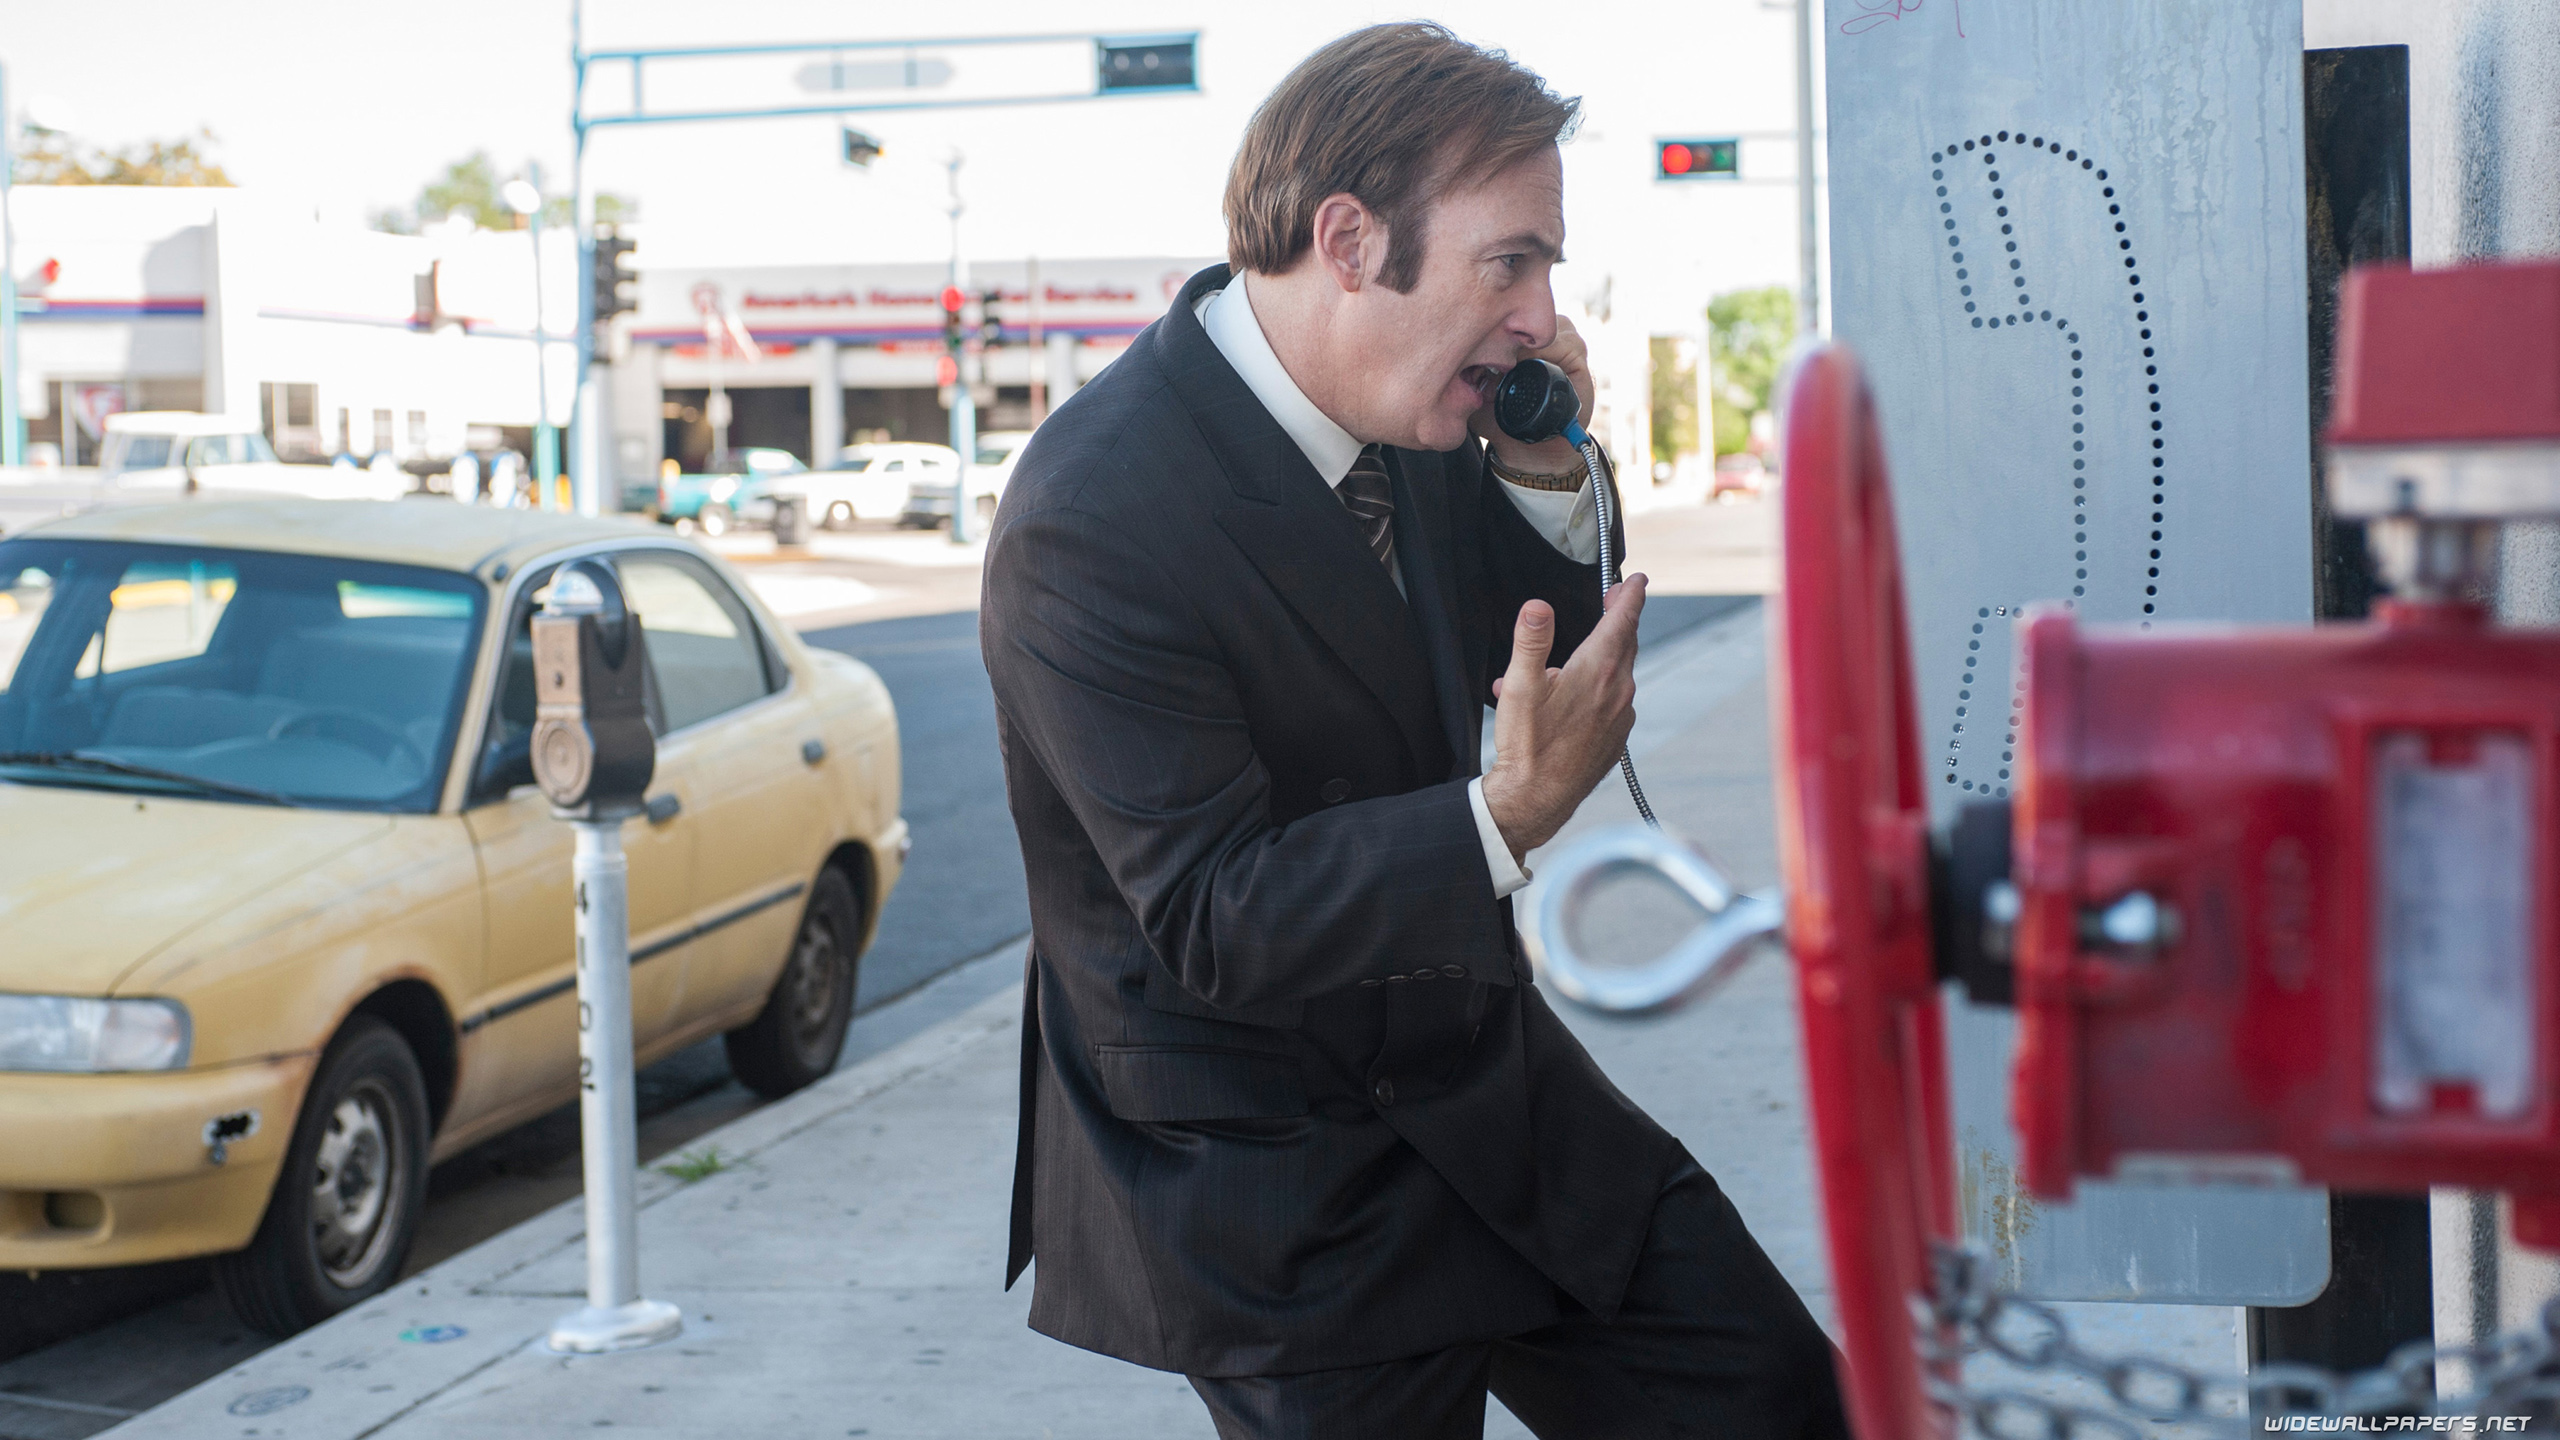 Better Call Saul Tv Series Desktop Wallpapers 4k Ultra Hd